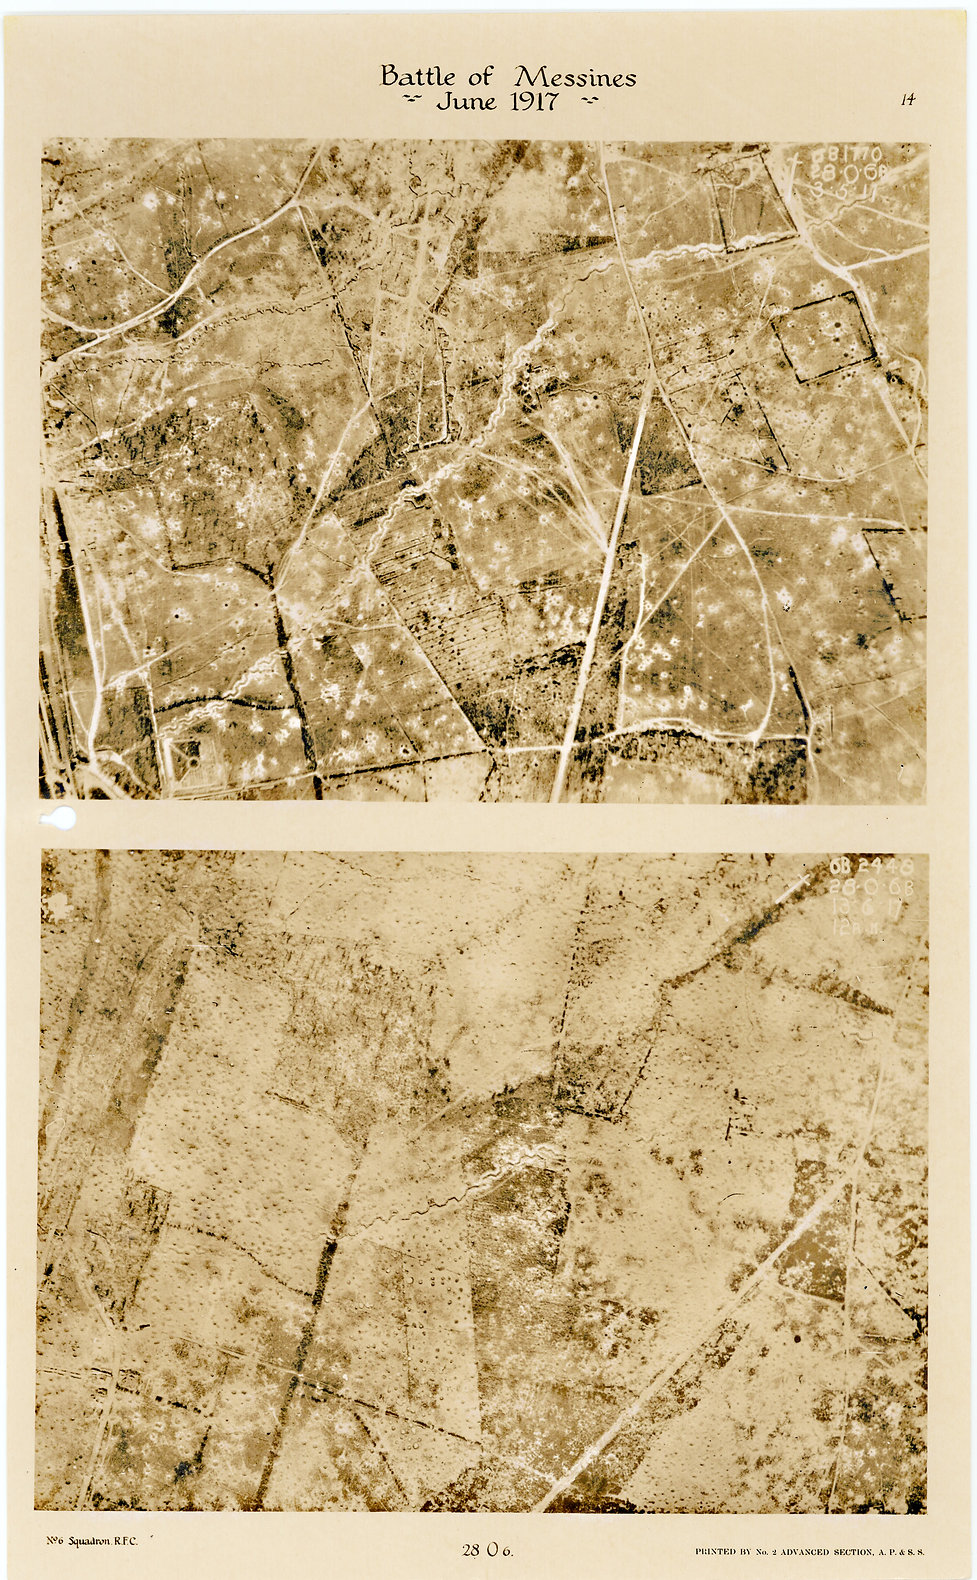 6 Squadron Aerial photos of Palinbeek Forest, taken by 6 Squadron before and after the Battle of Messines, 1917